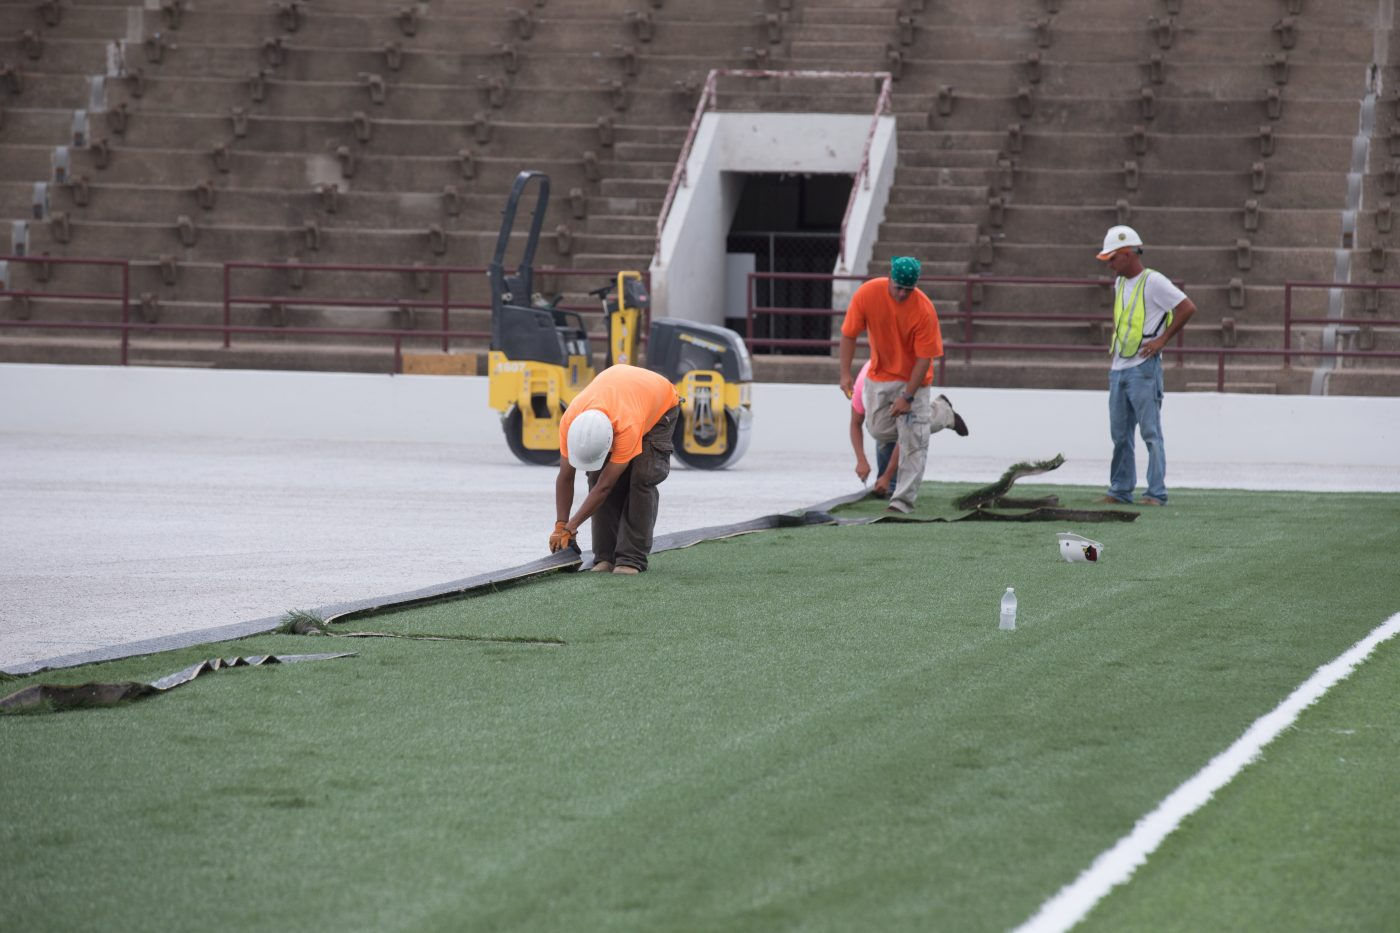 artificial turf a dangerous playing surface essay